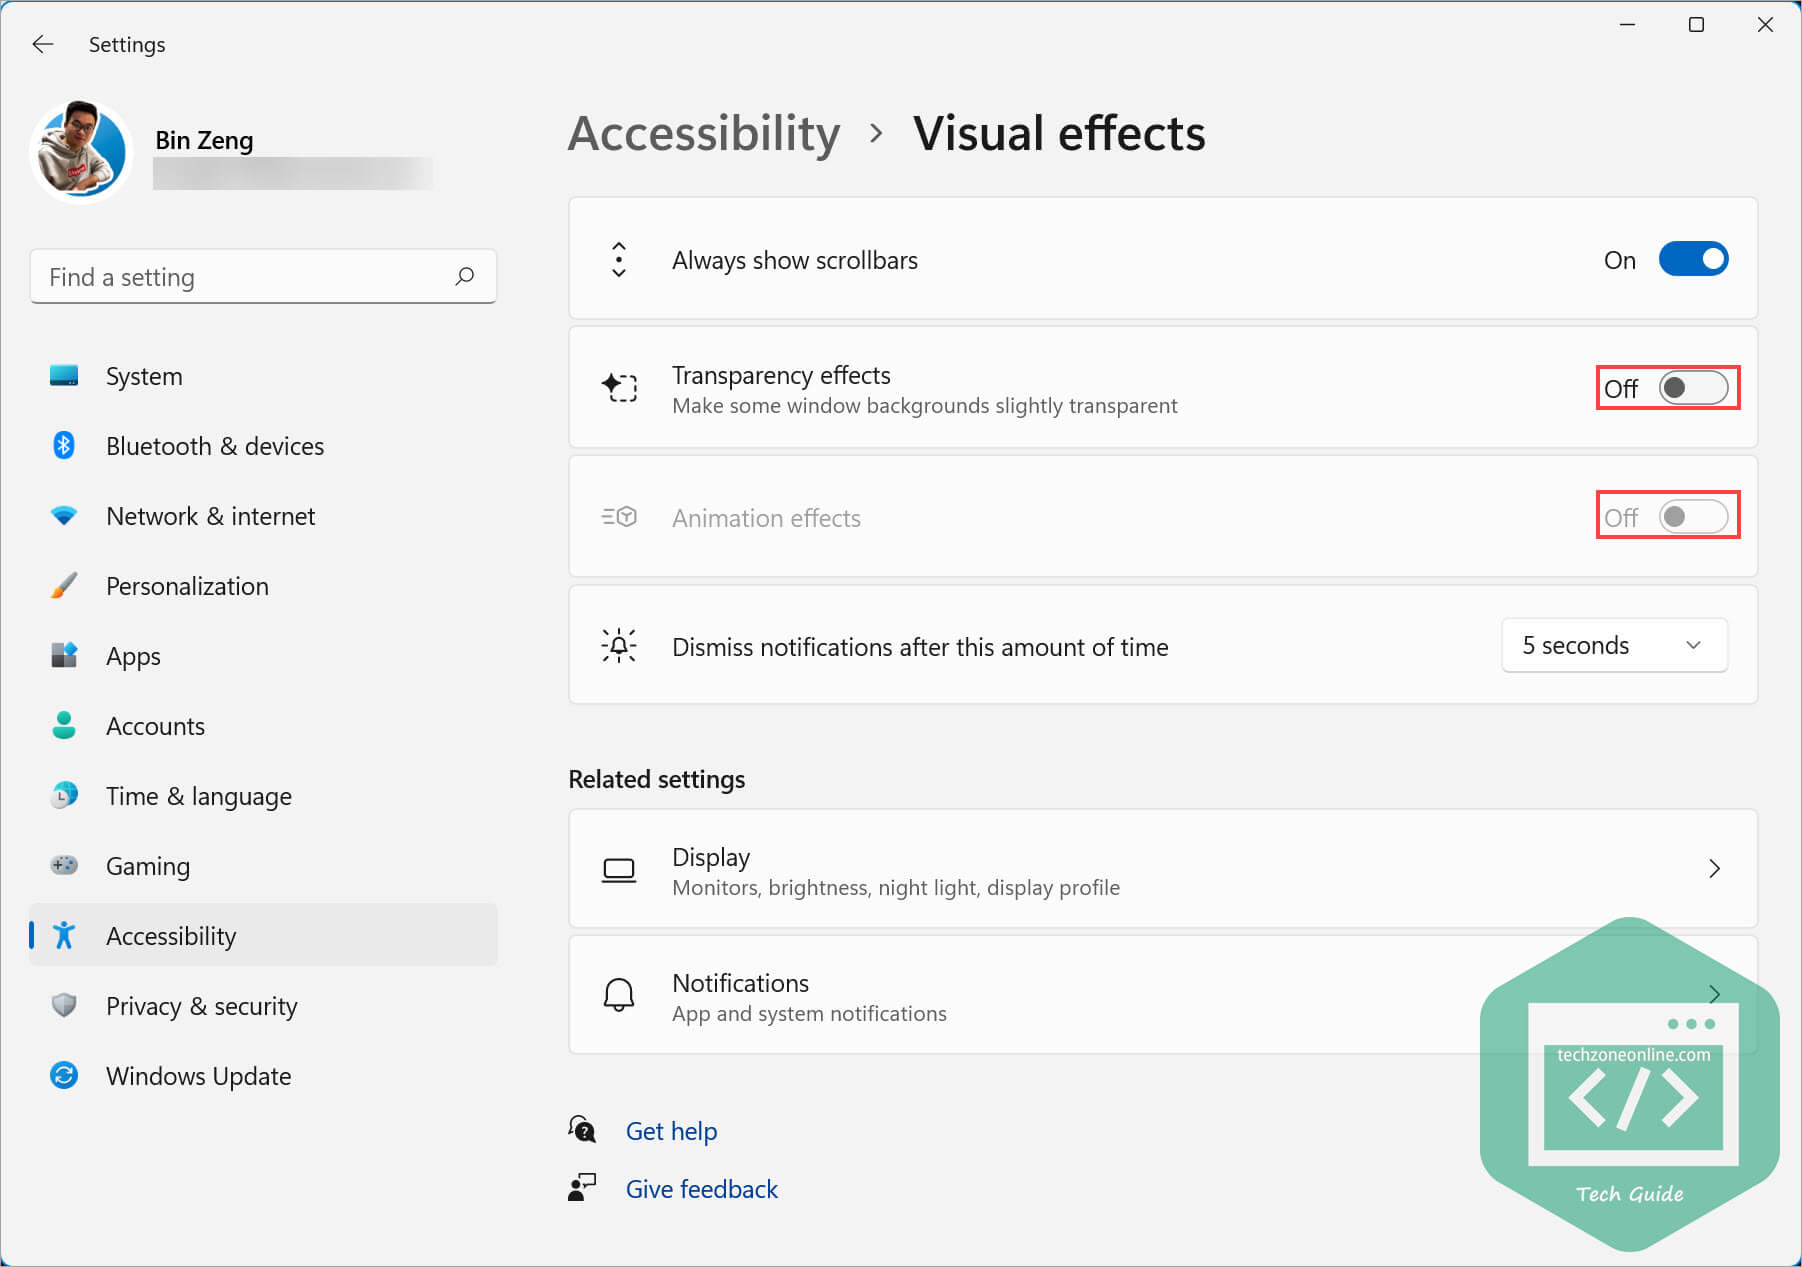 Turn off transparency effects and animation effects